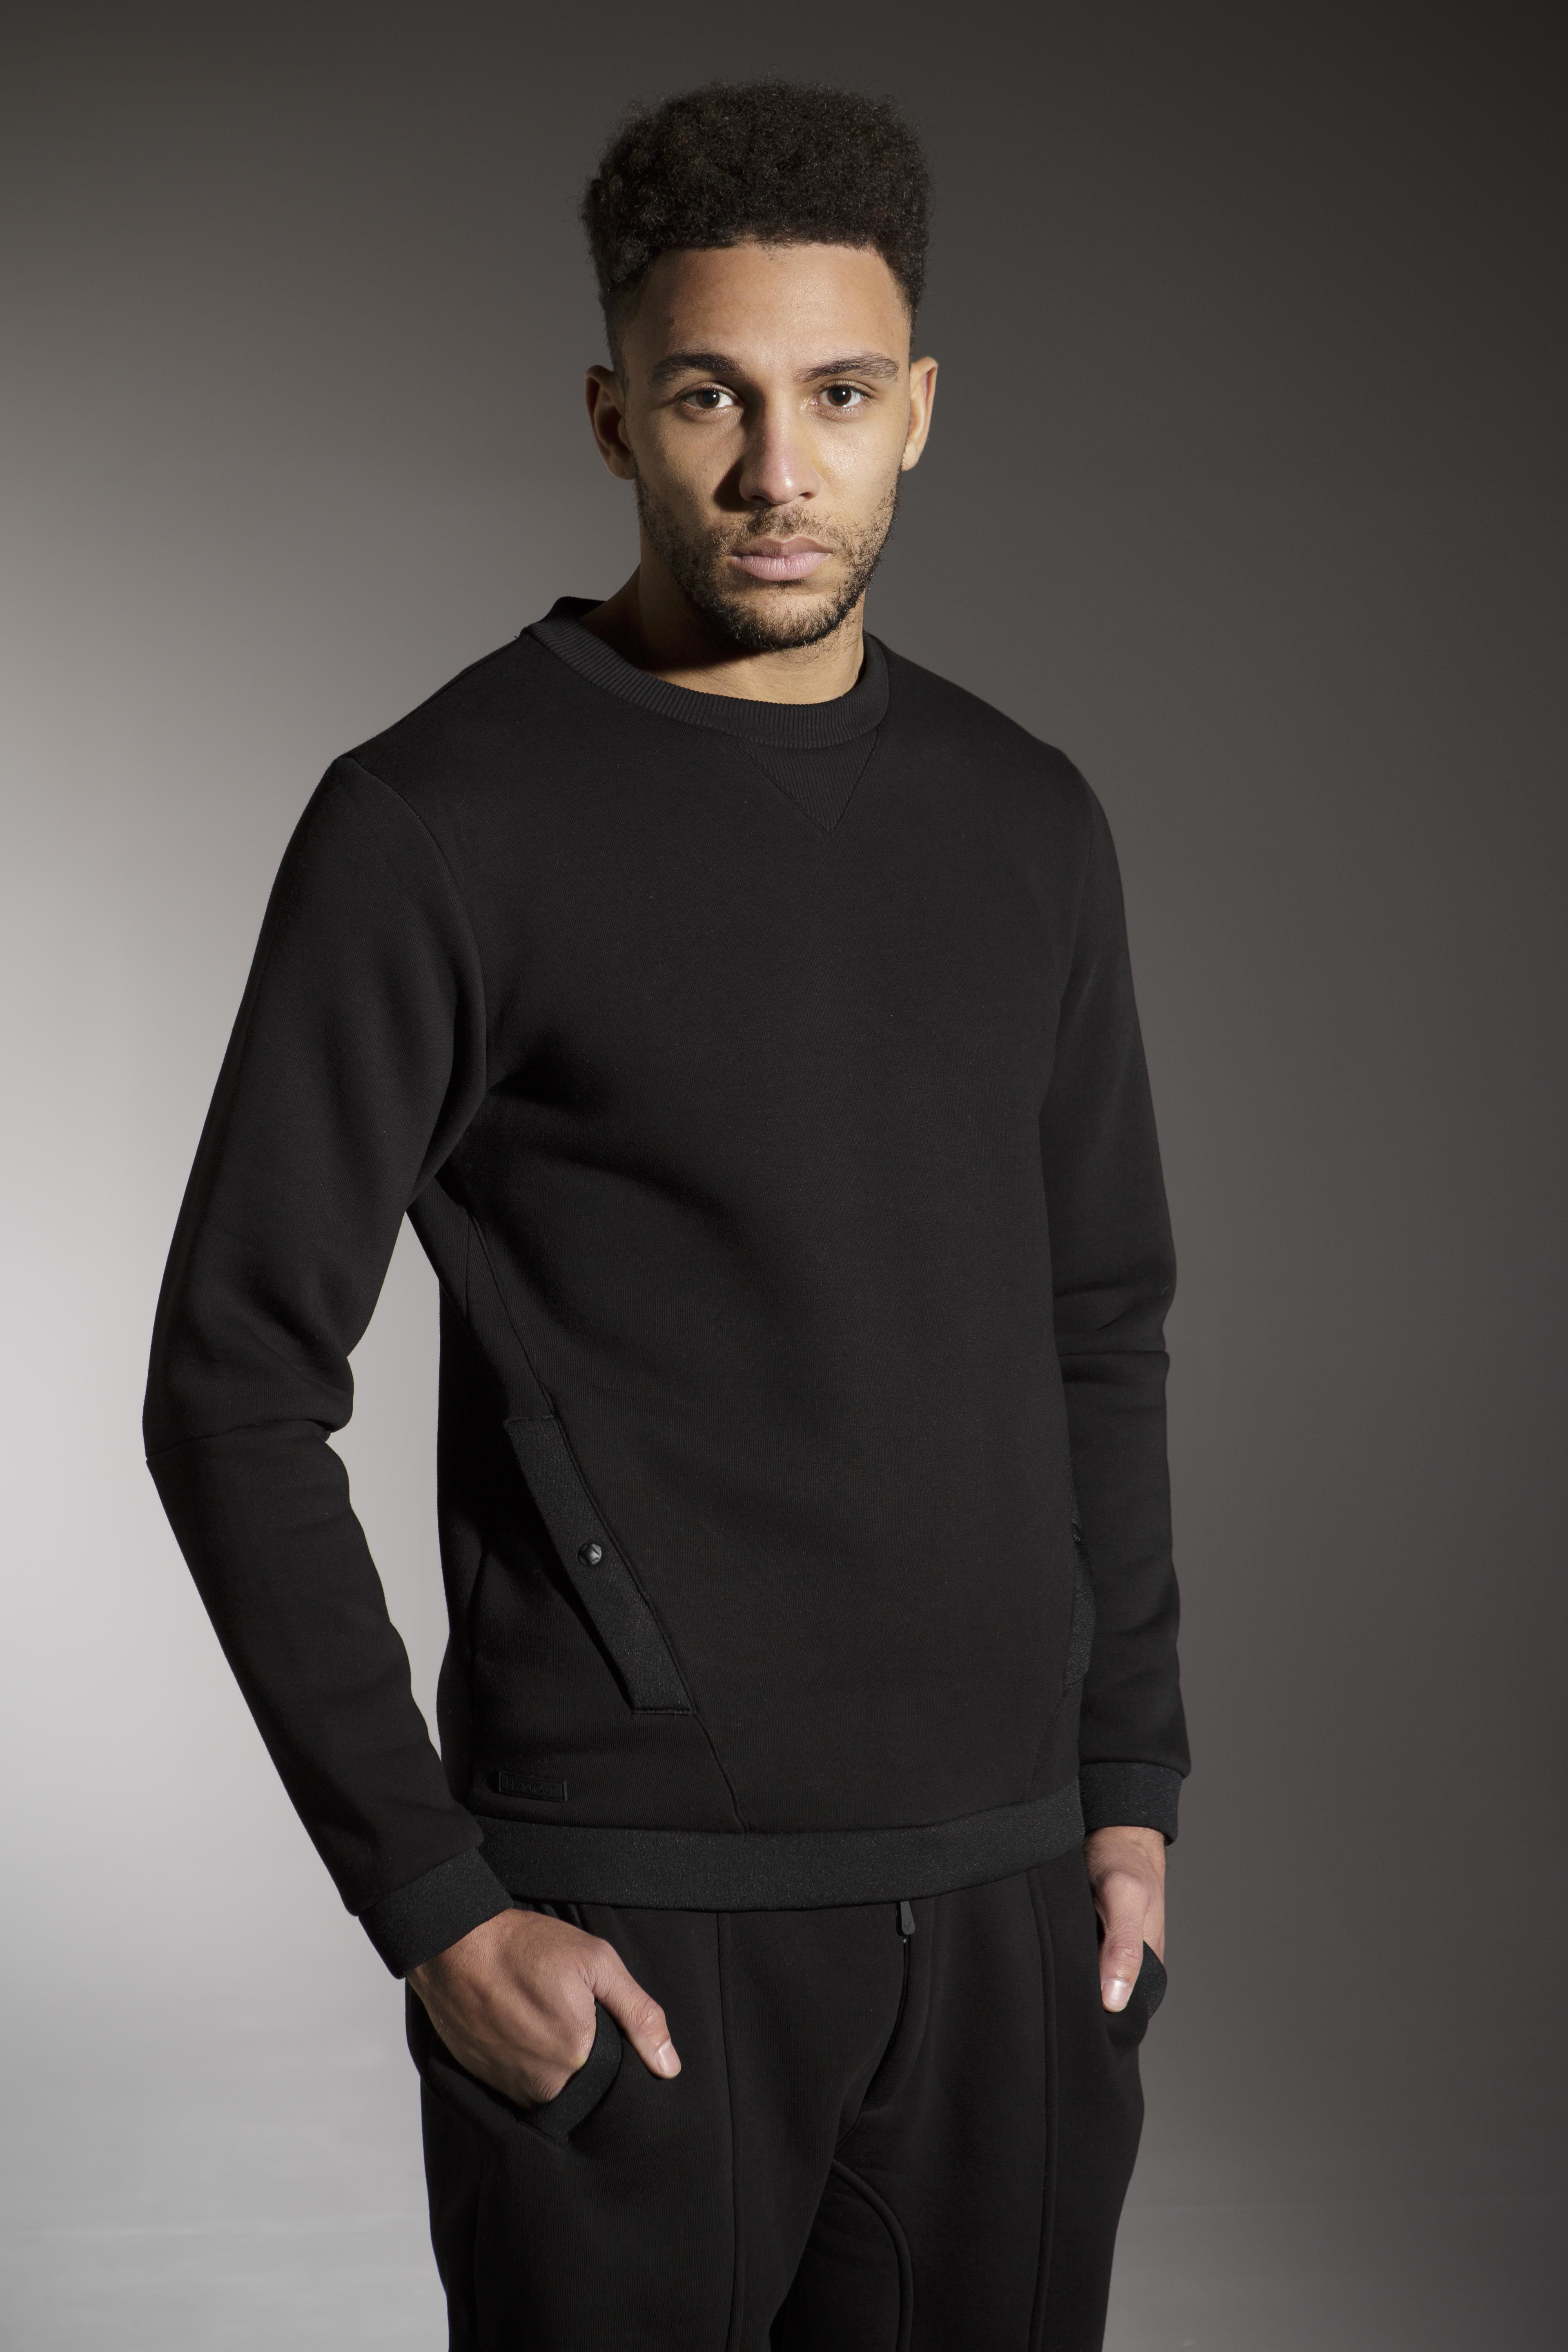 The 'GIGGS' Sweat - £50 - http://www.voijeans.com/blackout/giggs-sweat-black.html